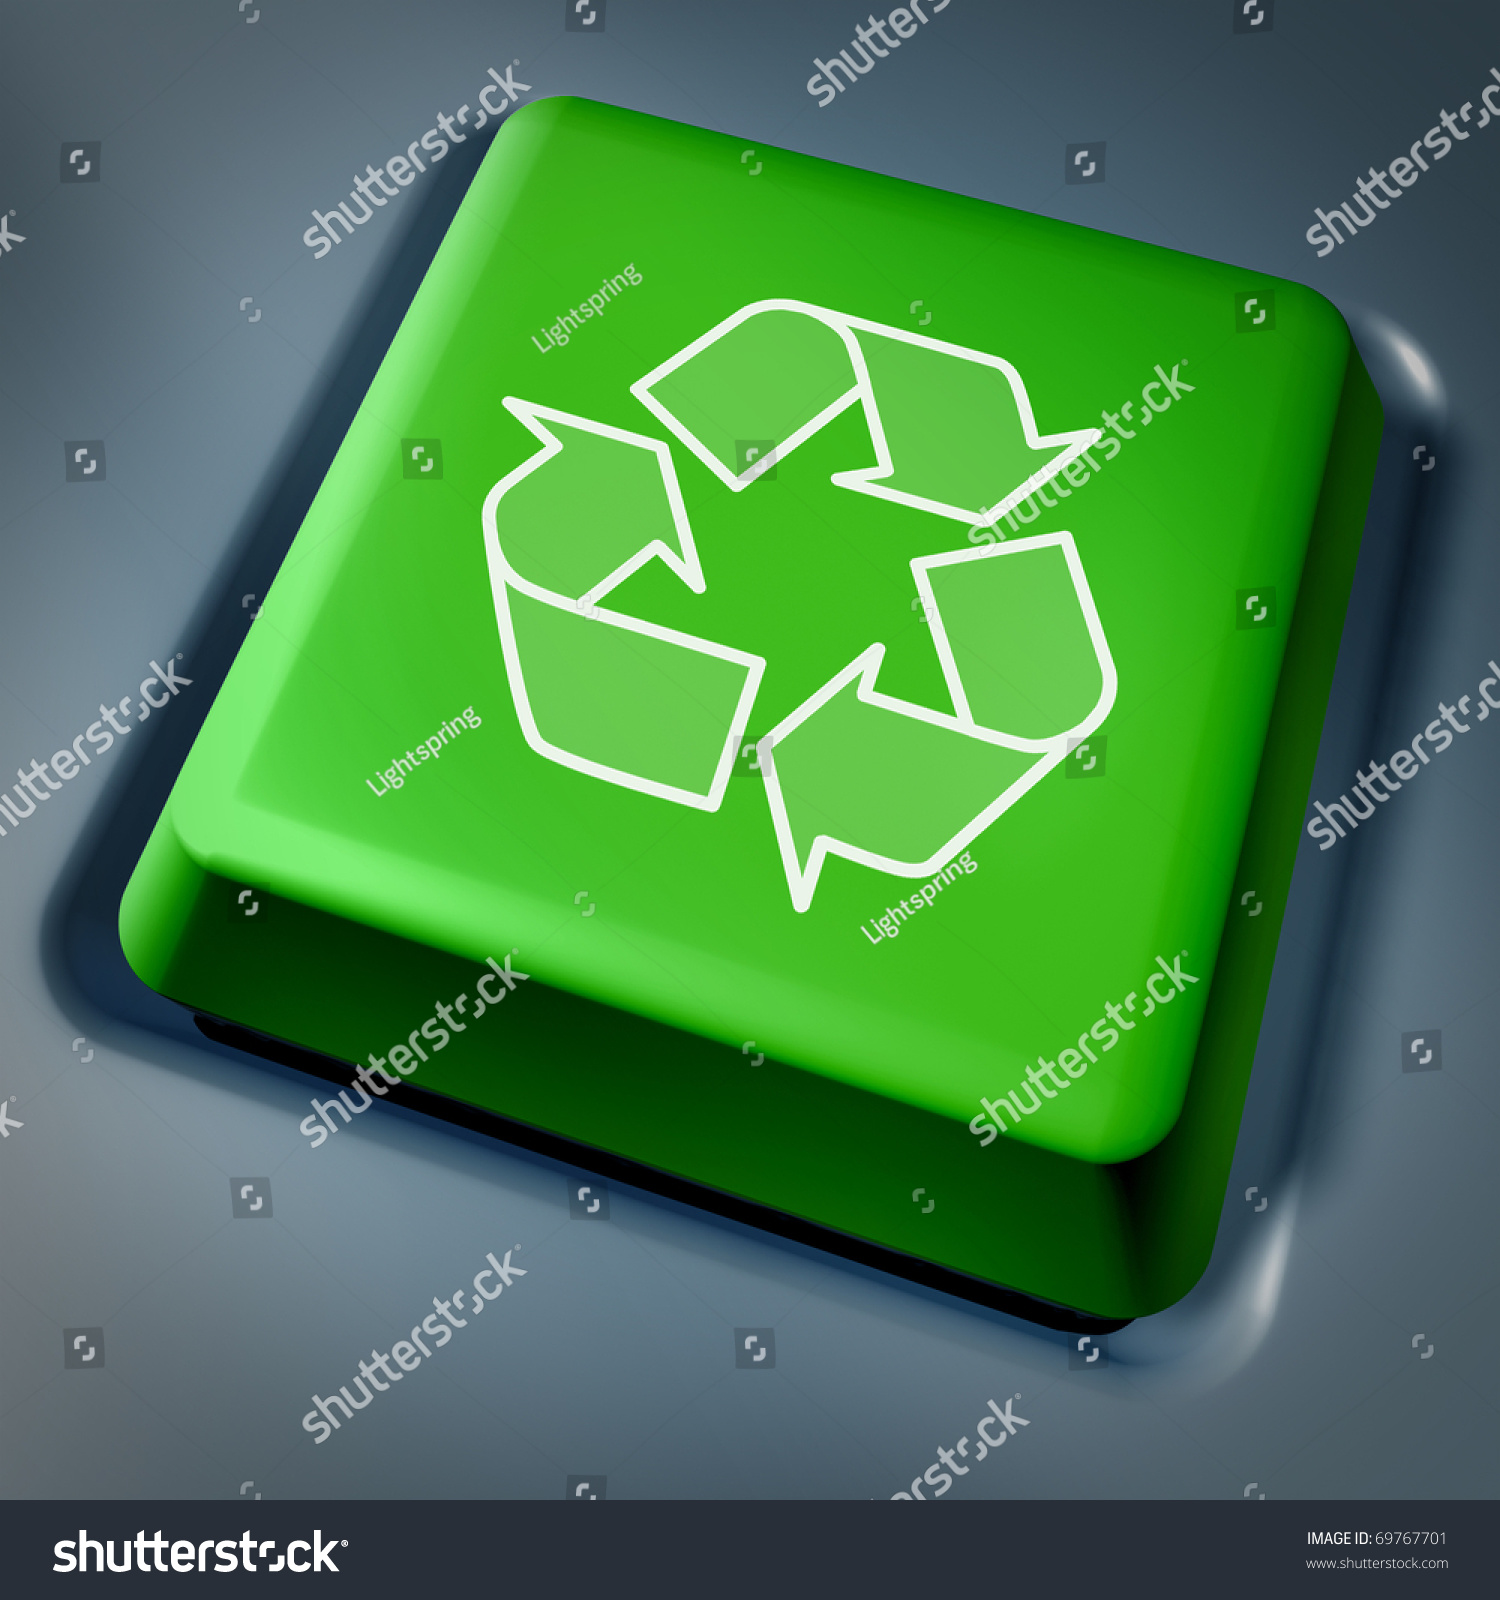 Recycle symbol on computer key laptop stock illustration 69767701 recycle symbol on a computer key laptop keyboard green biocorpaavc Choice Image